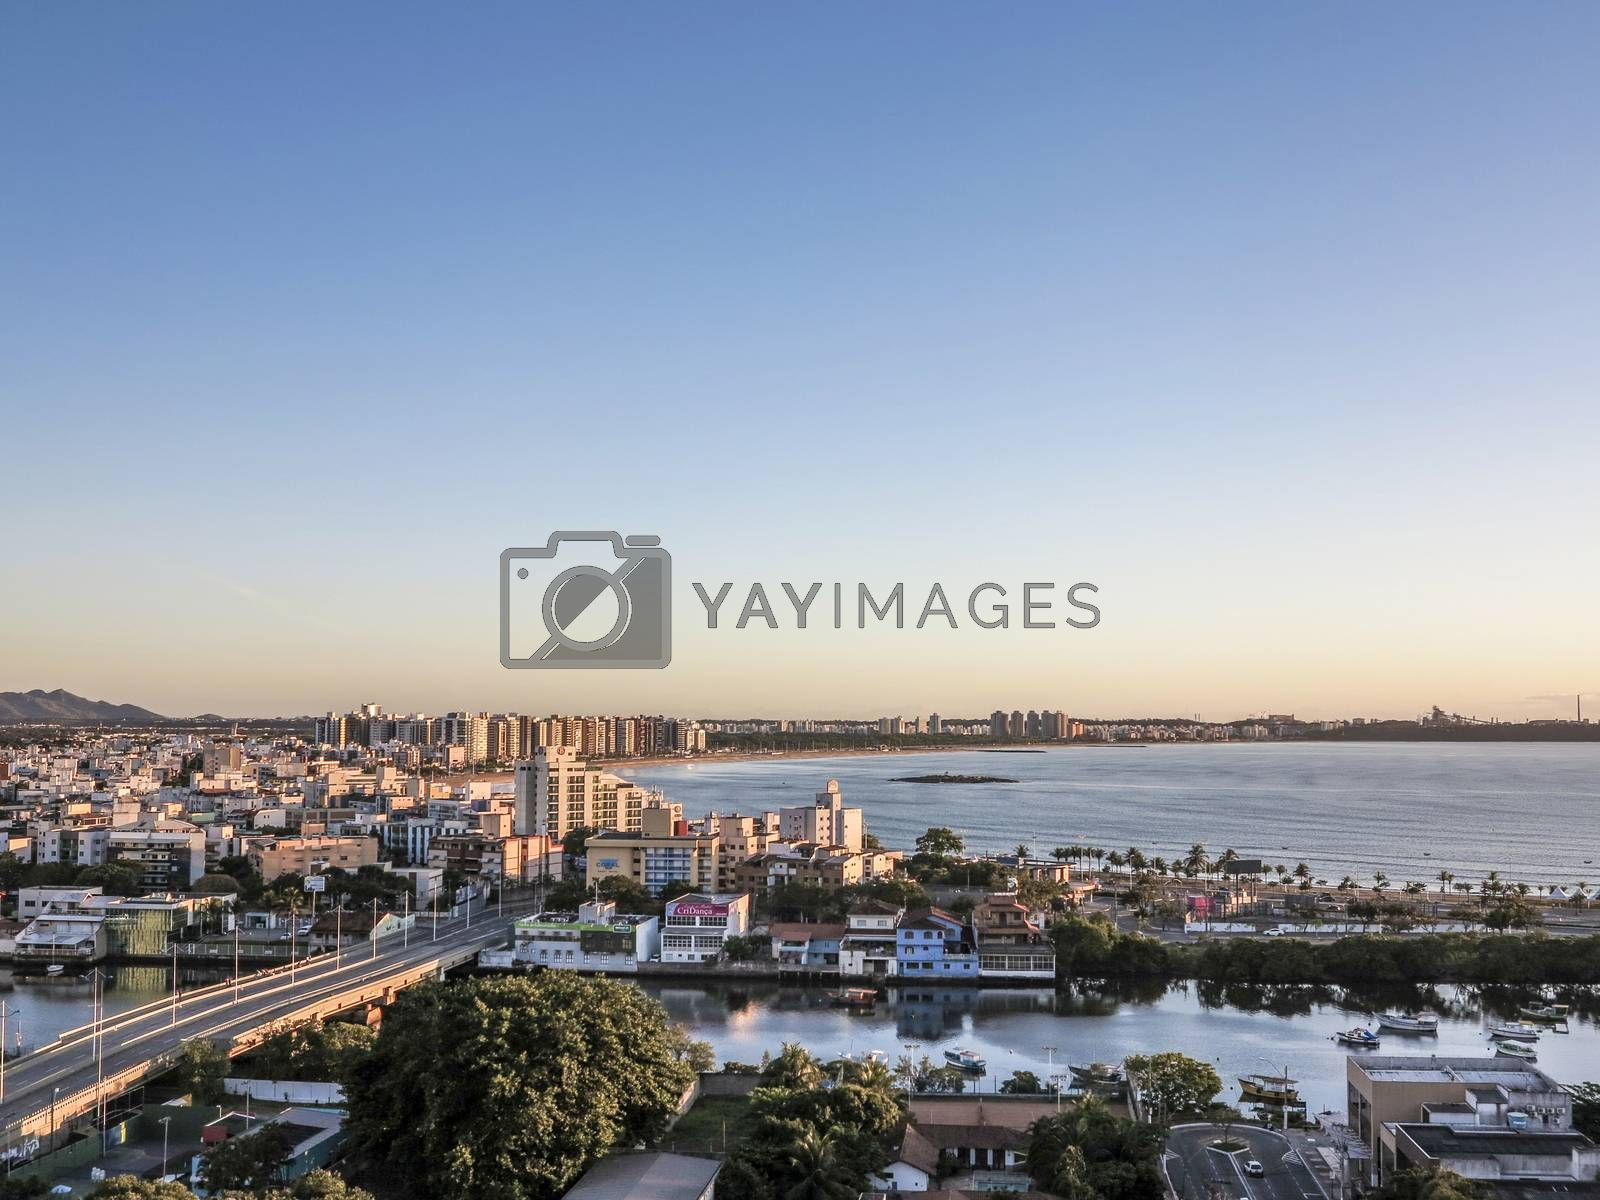 VITORIA, BRAZIL - OCT 27, 2013: aerial of Vitoria, Brazil in sunset. Vitoria has a population of 313 tst people in 2005 and covers an area of 93 square km.